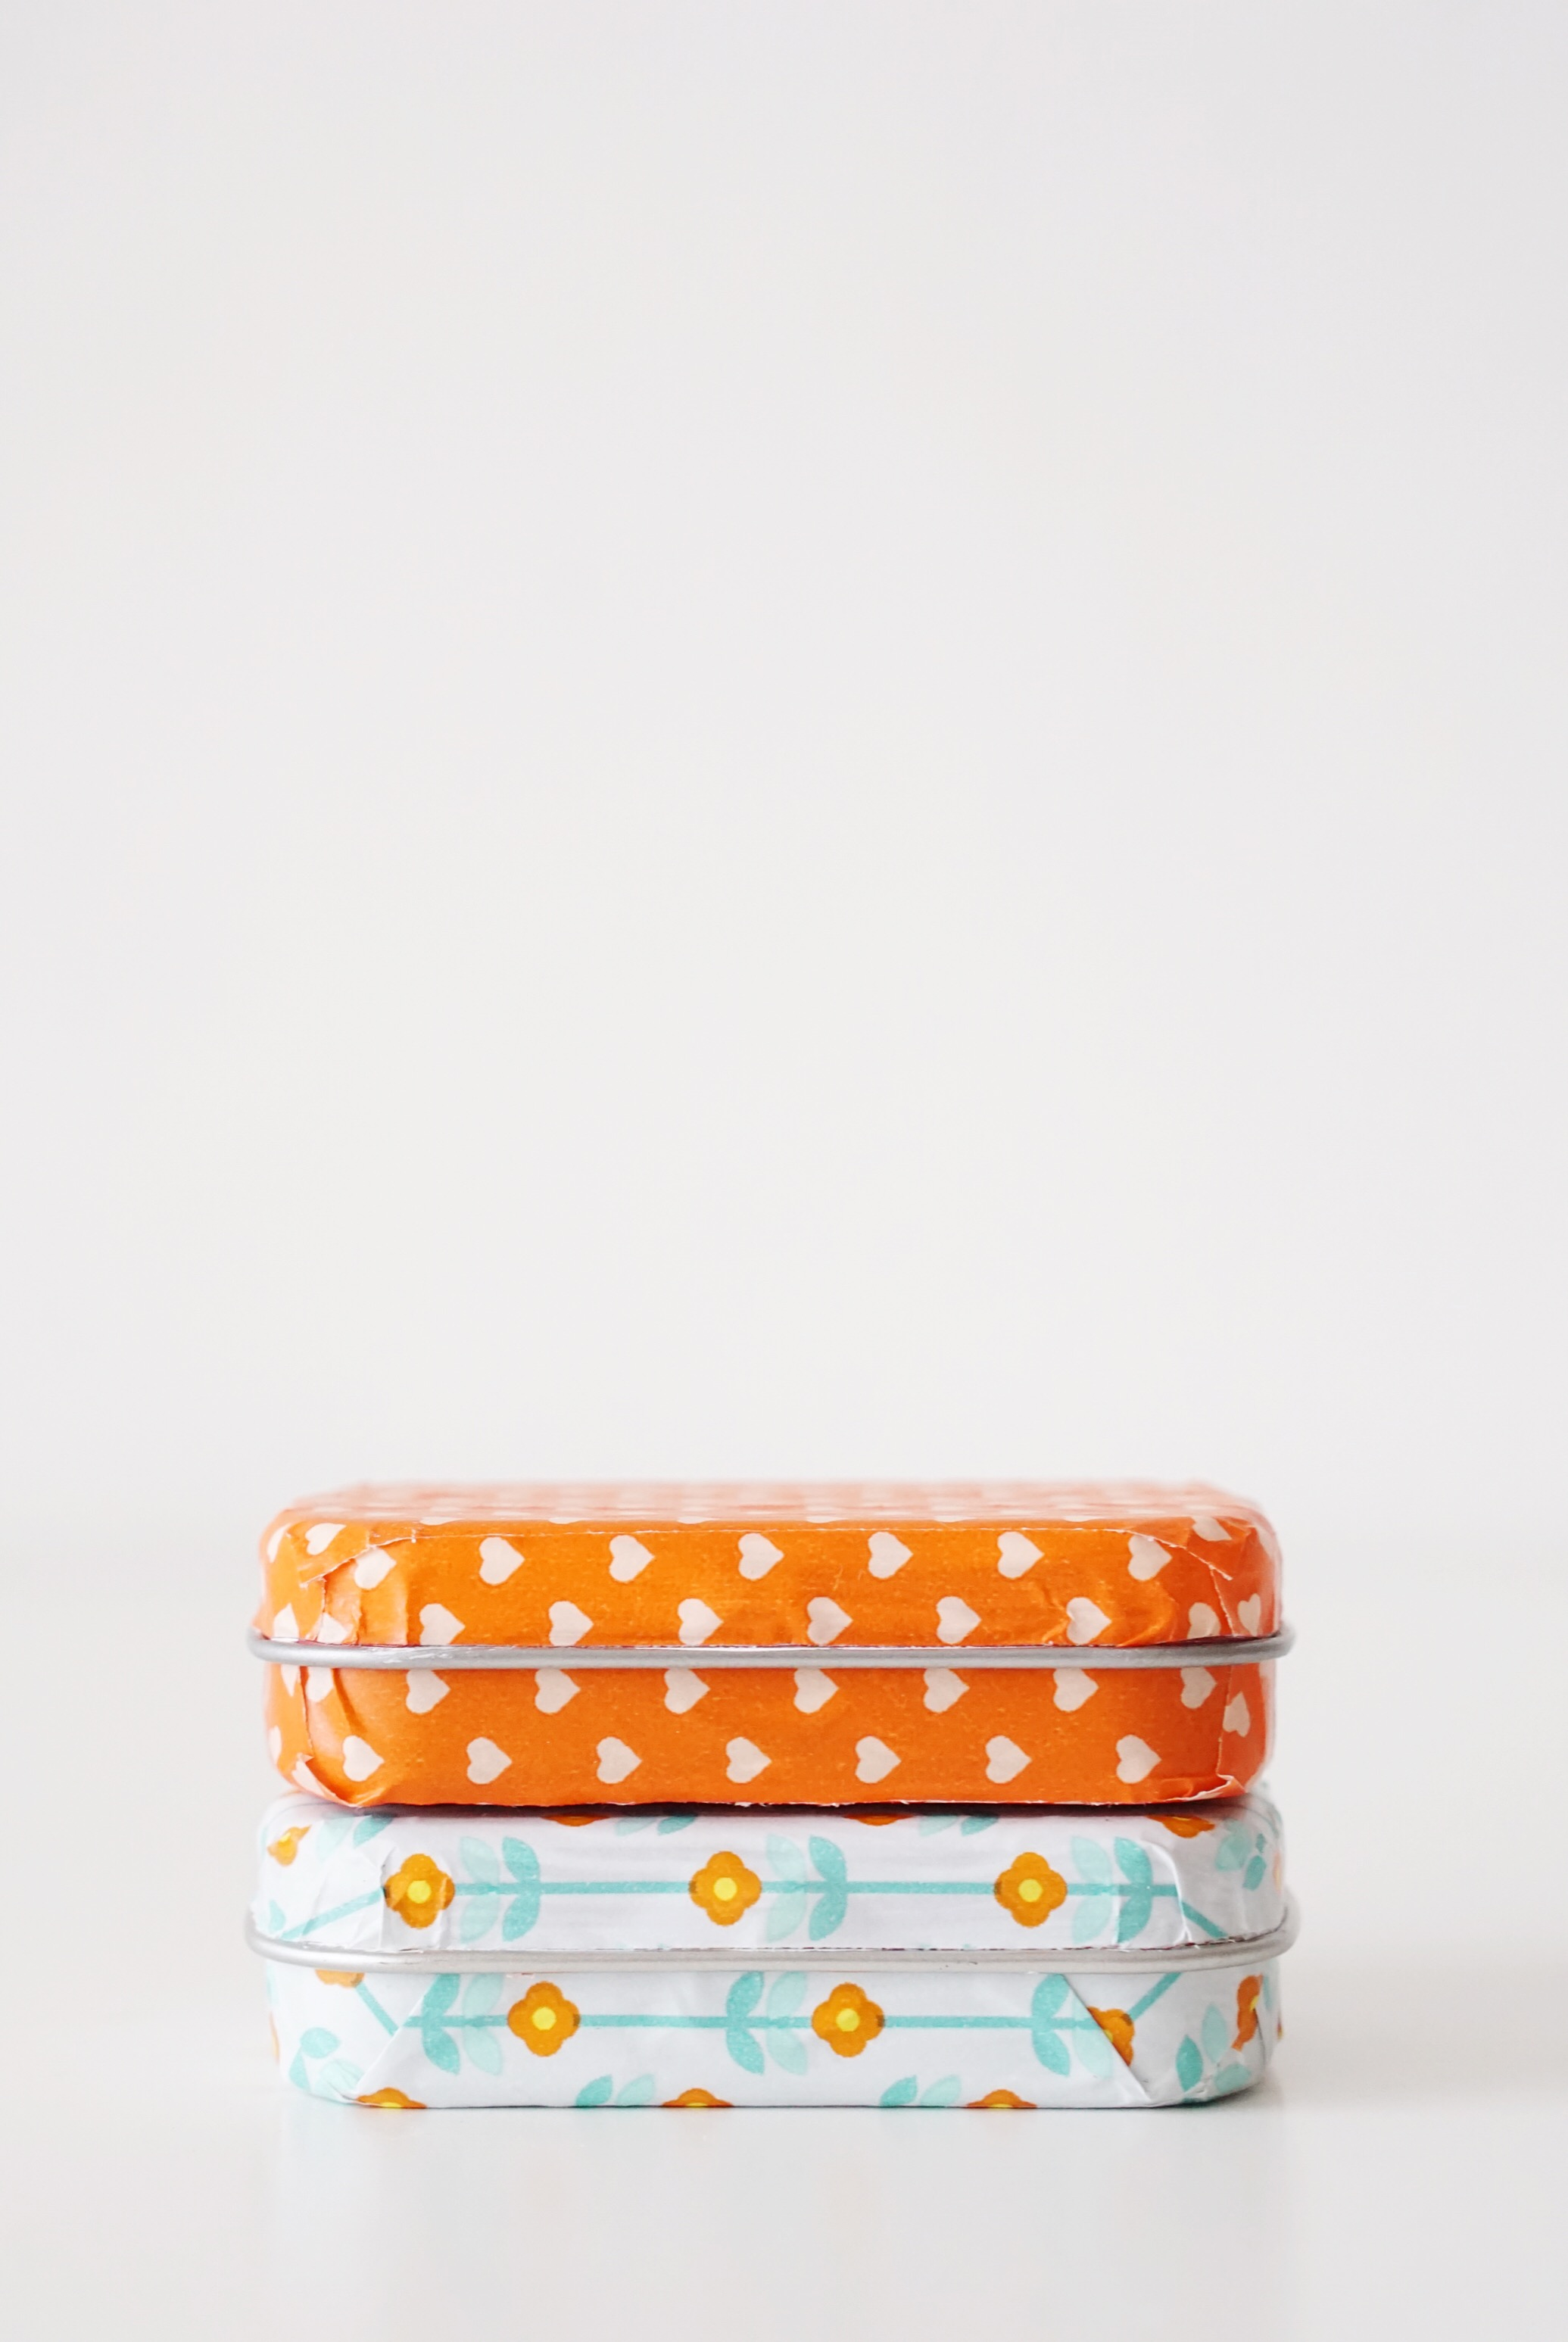 Washi Tape Crafts Washi Tape Crafts Upcycled Mint Tin  Diycandy